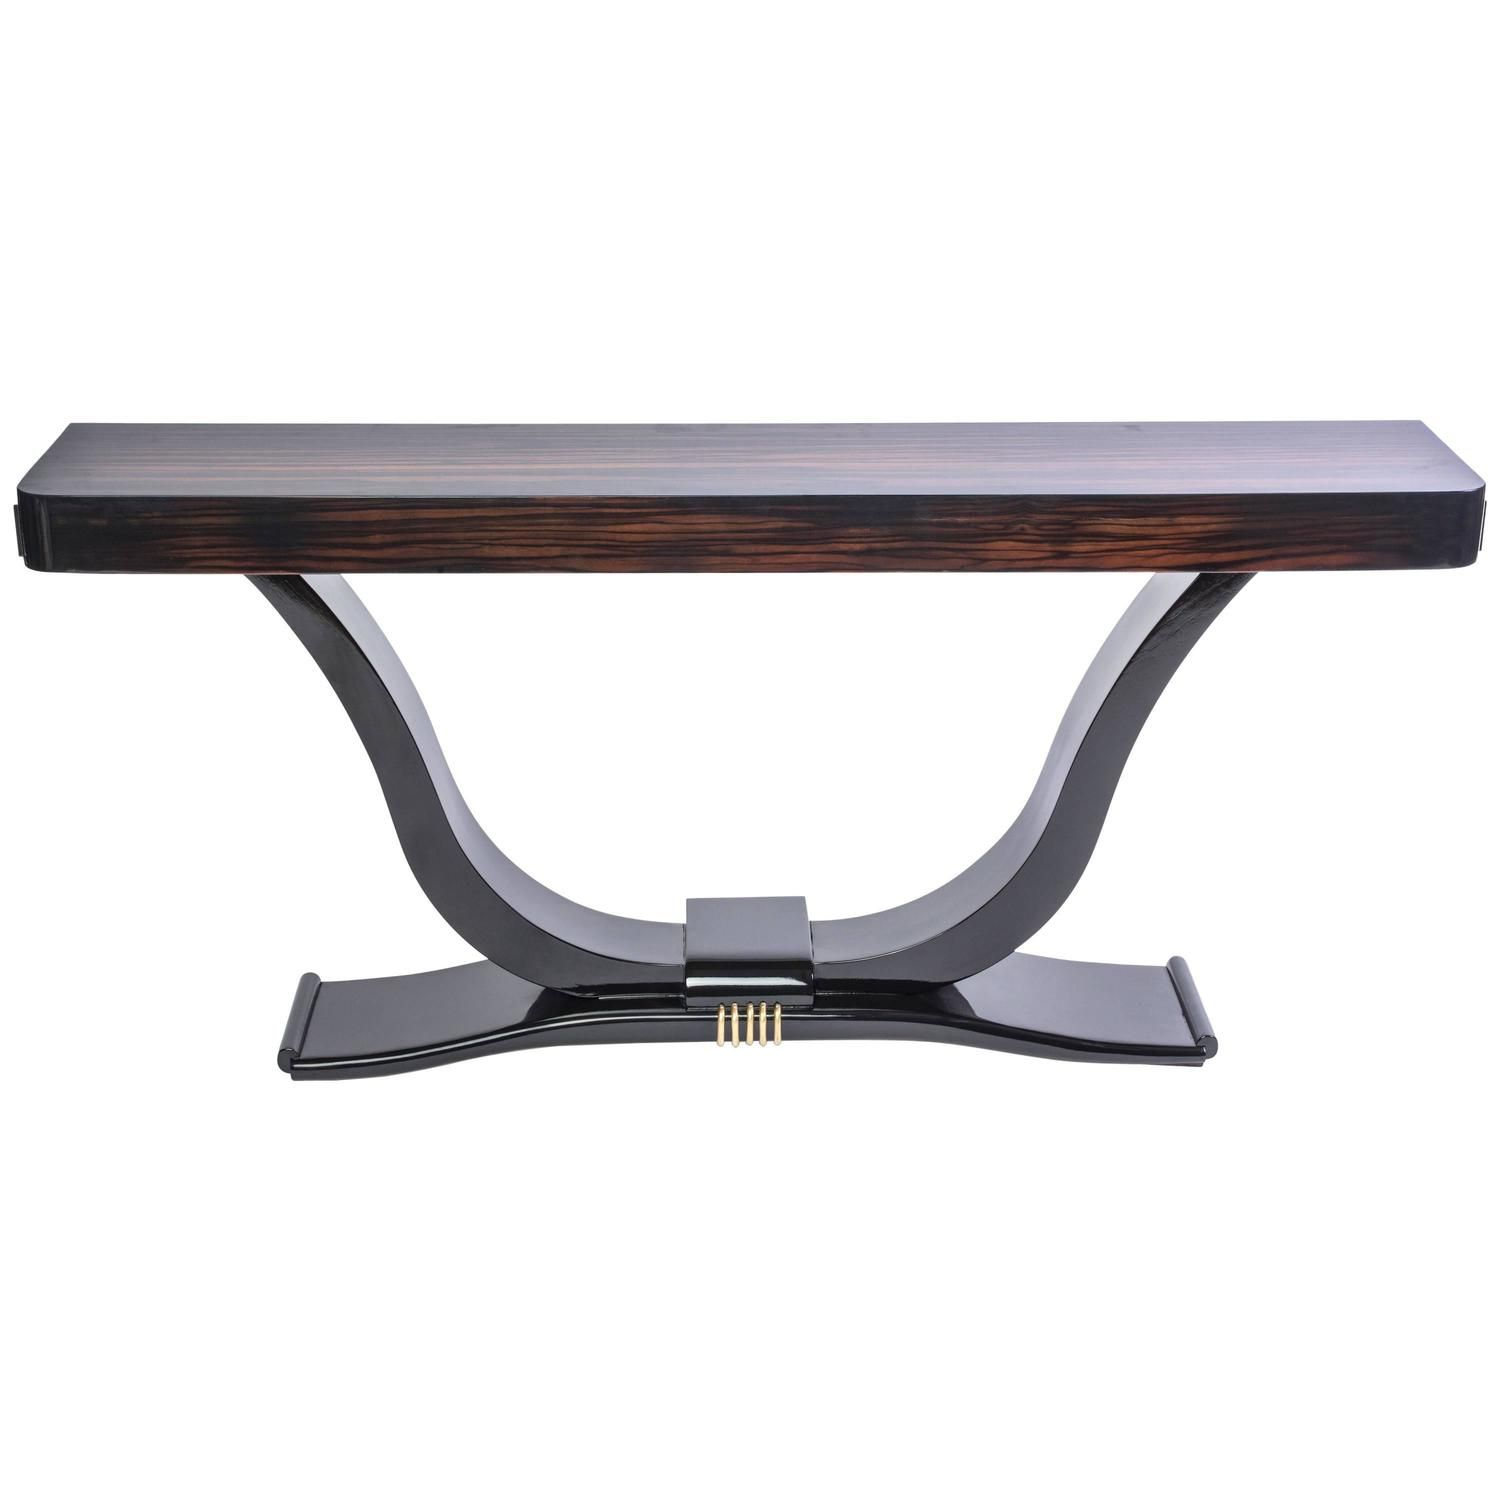 Beautiful art deco palisander with macassar ebony console table beautiful art deco palisander with macassar ebony console table geotapseo Image collections